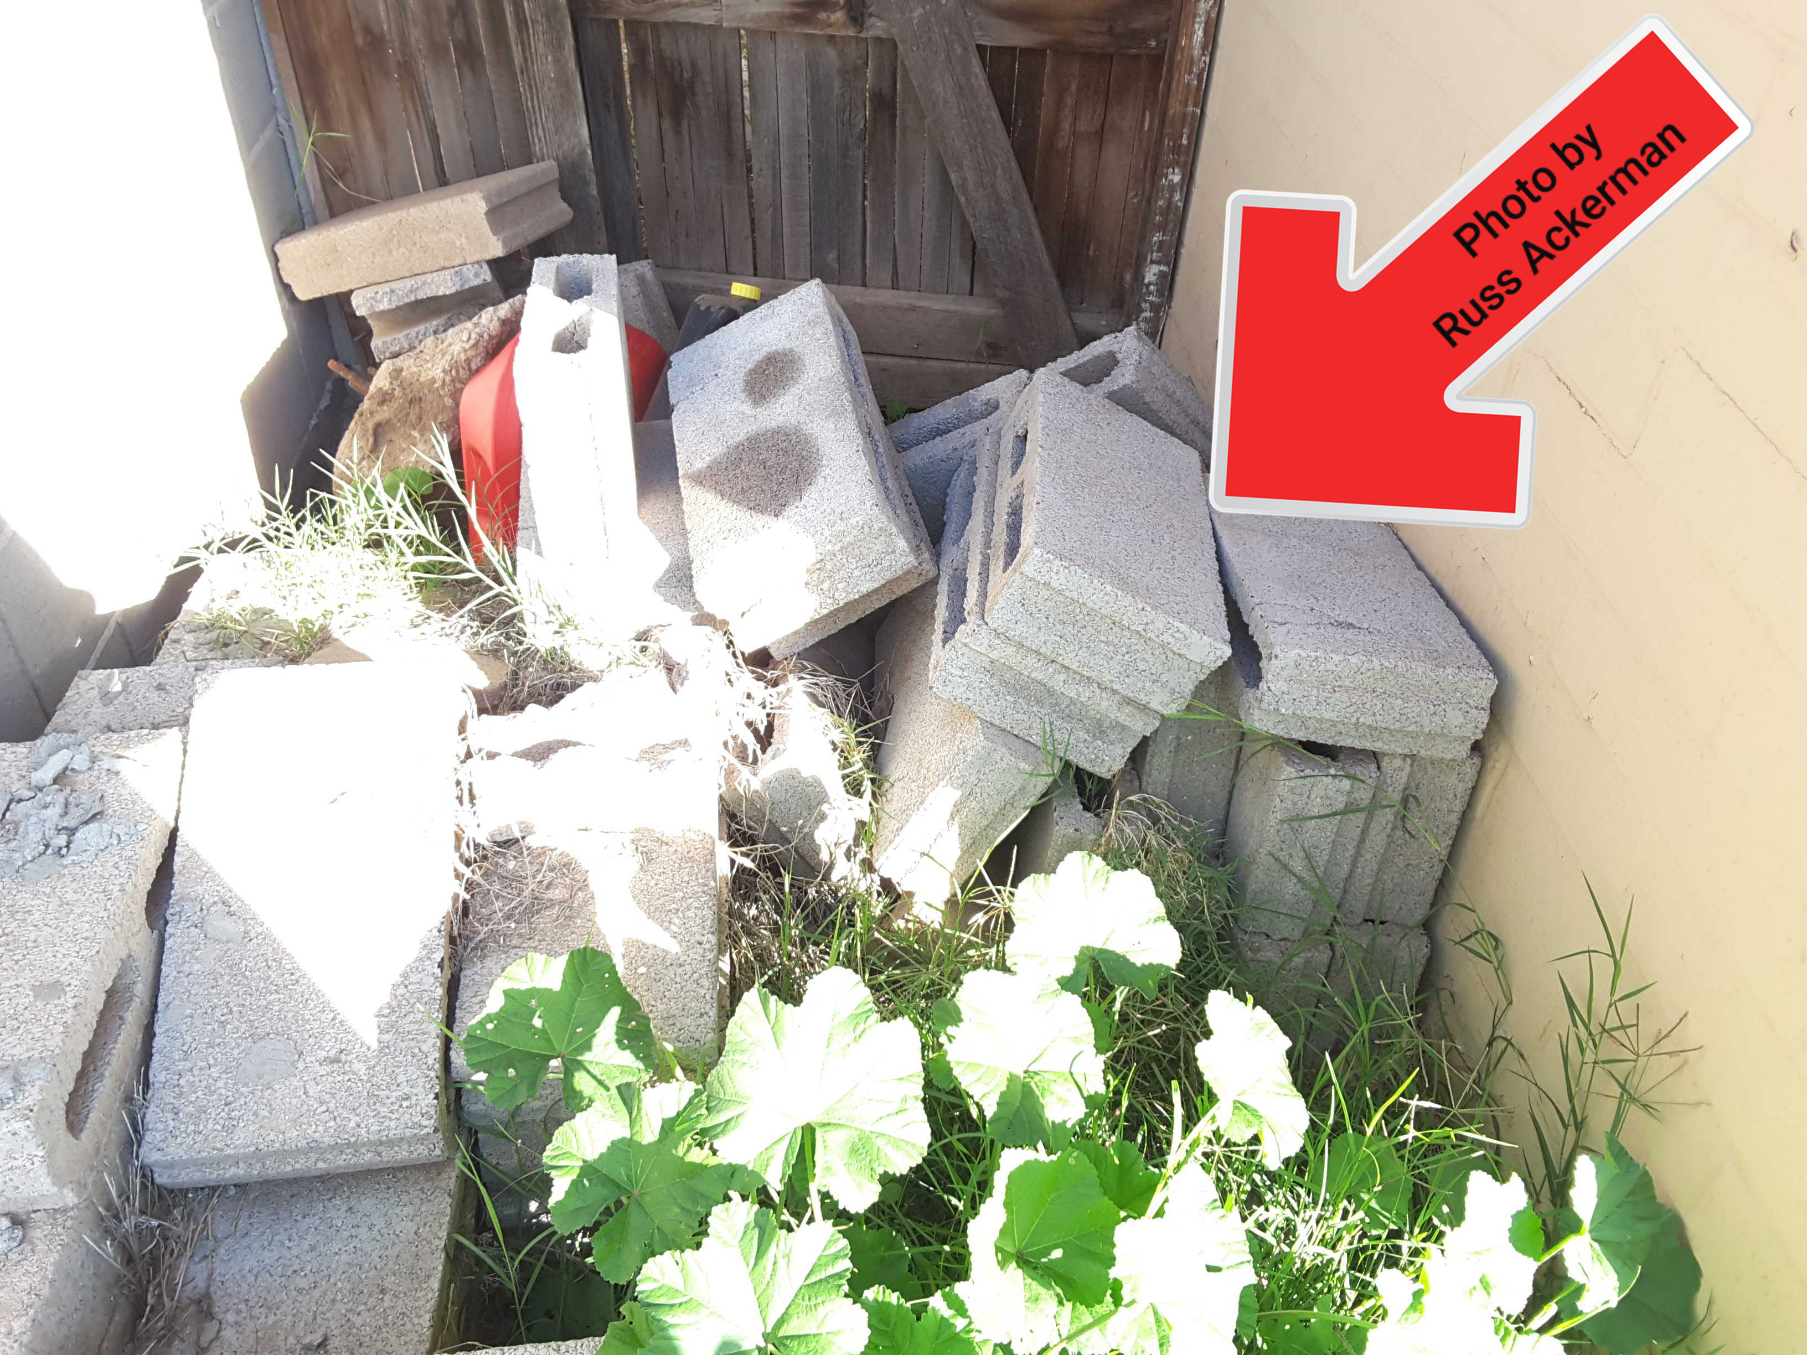 Do you hate rodents? Then why create a perfect home for them with piles of debris & allowing vegetation to grow against your home?